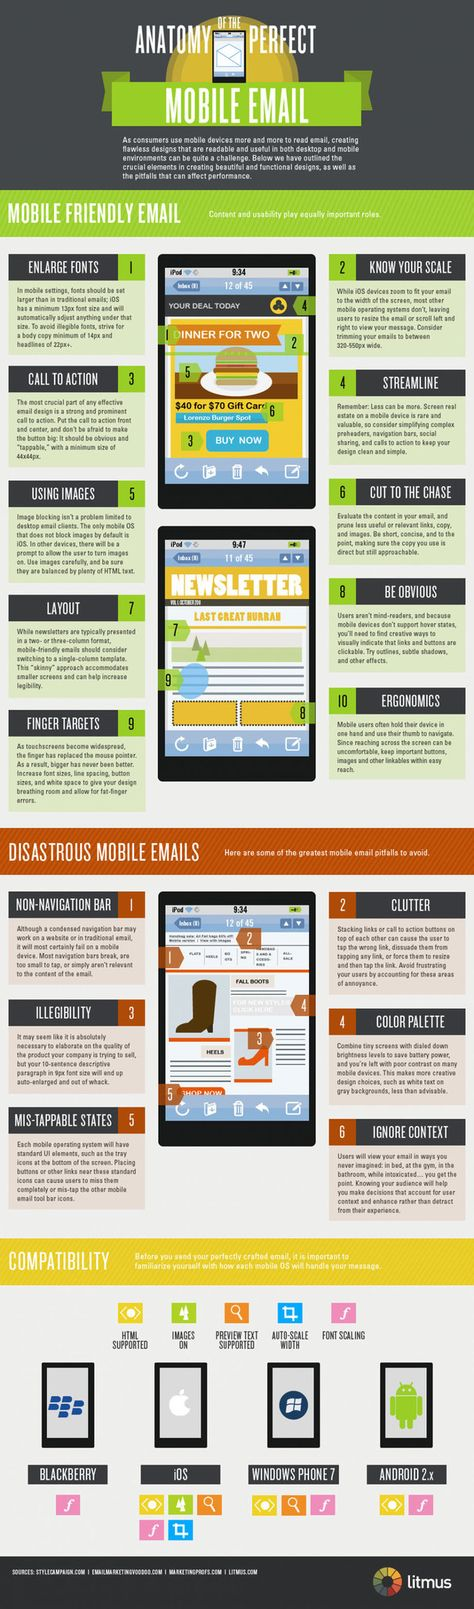 10 more mind-blowing mobile infographics – Econsultancy